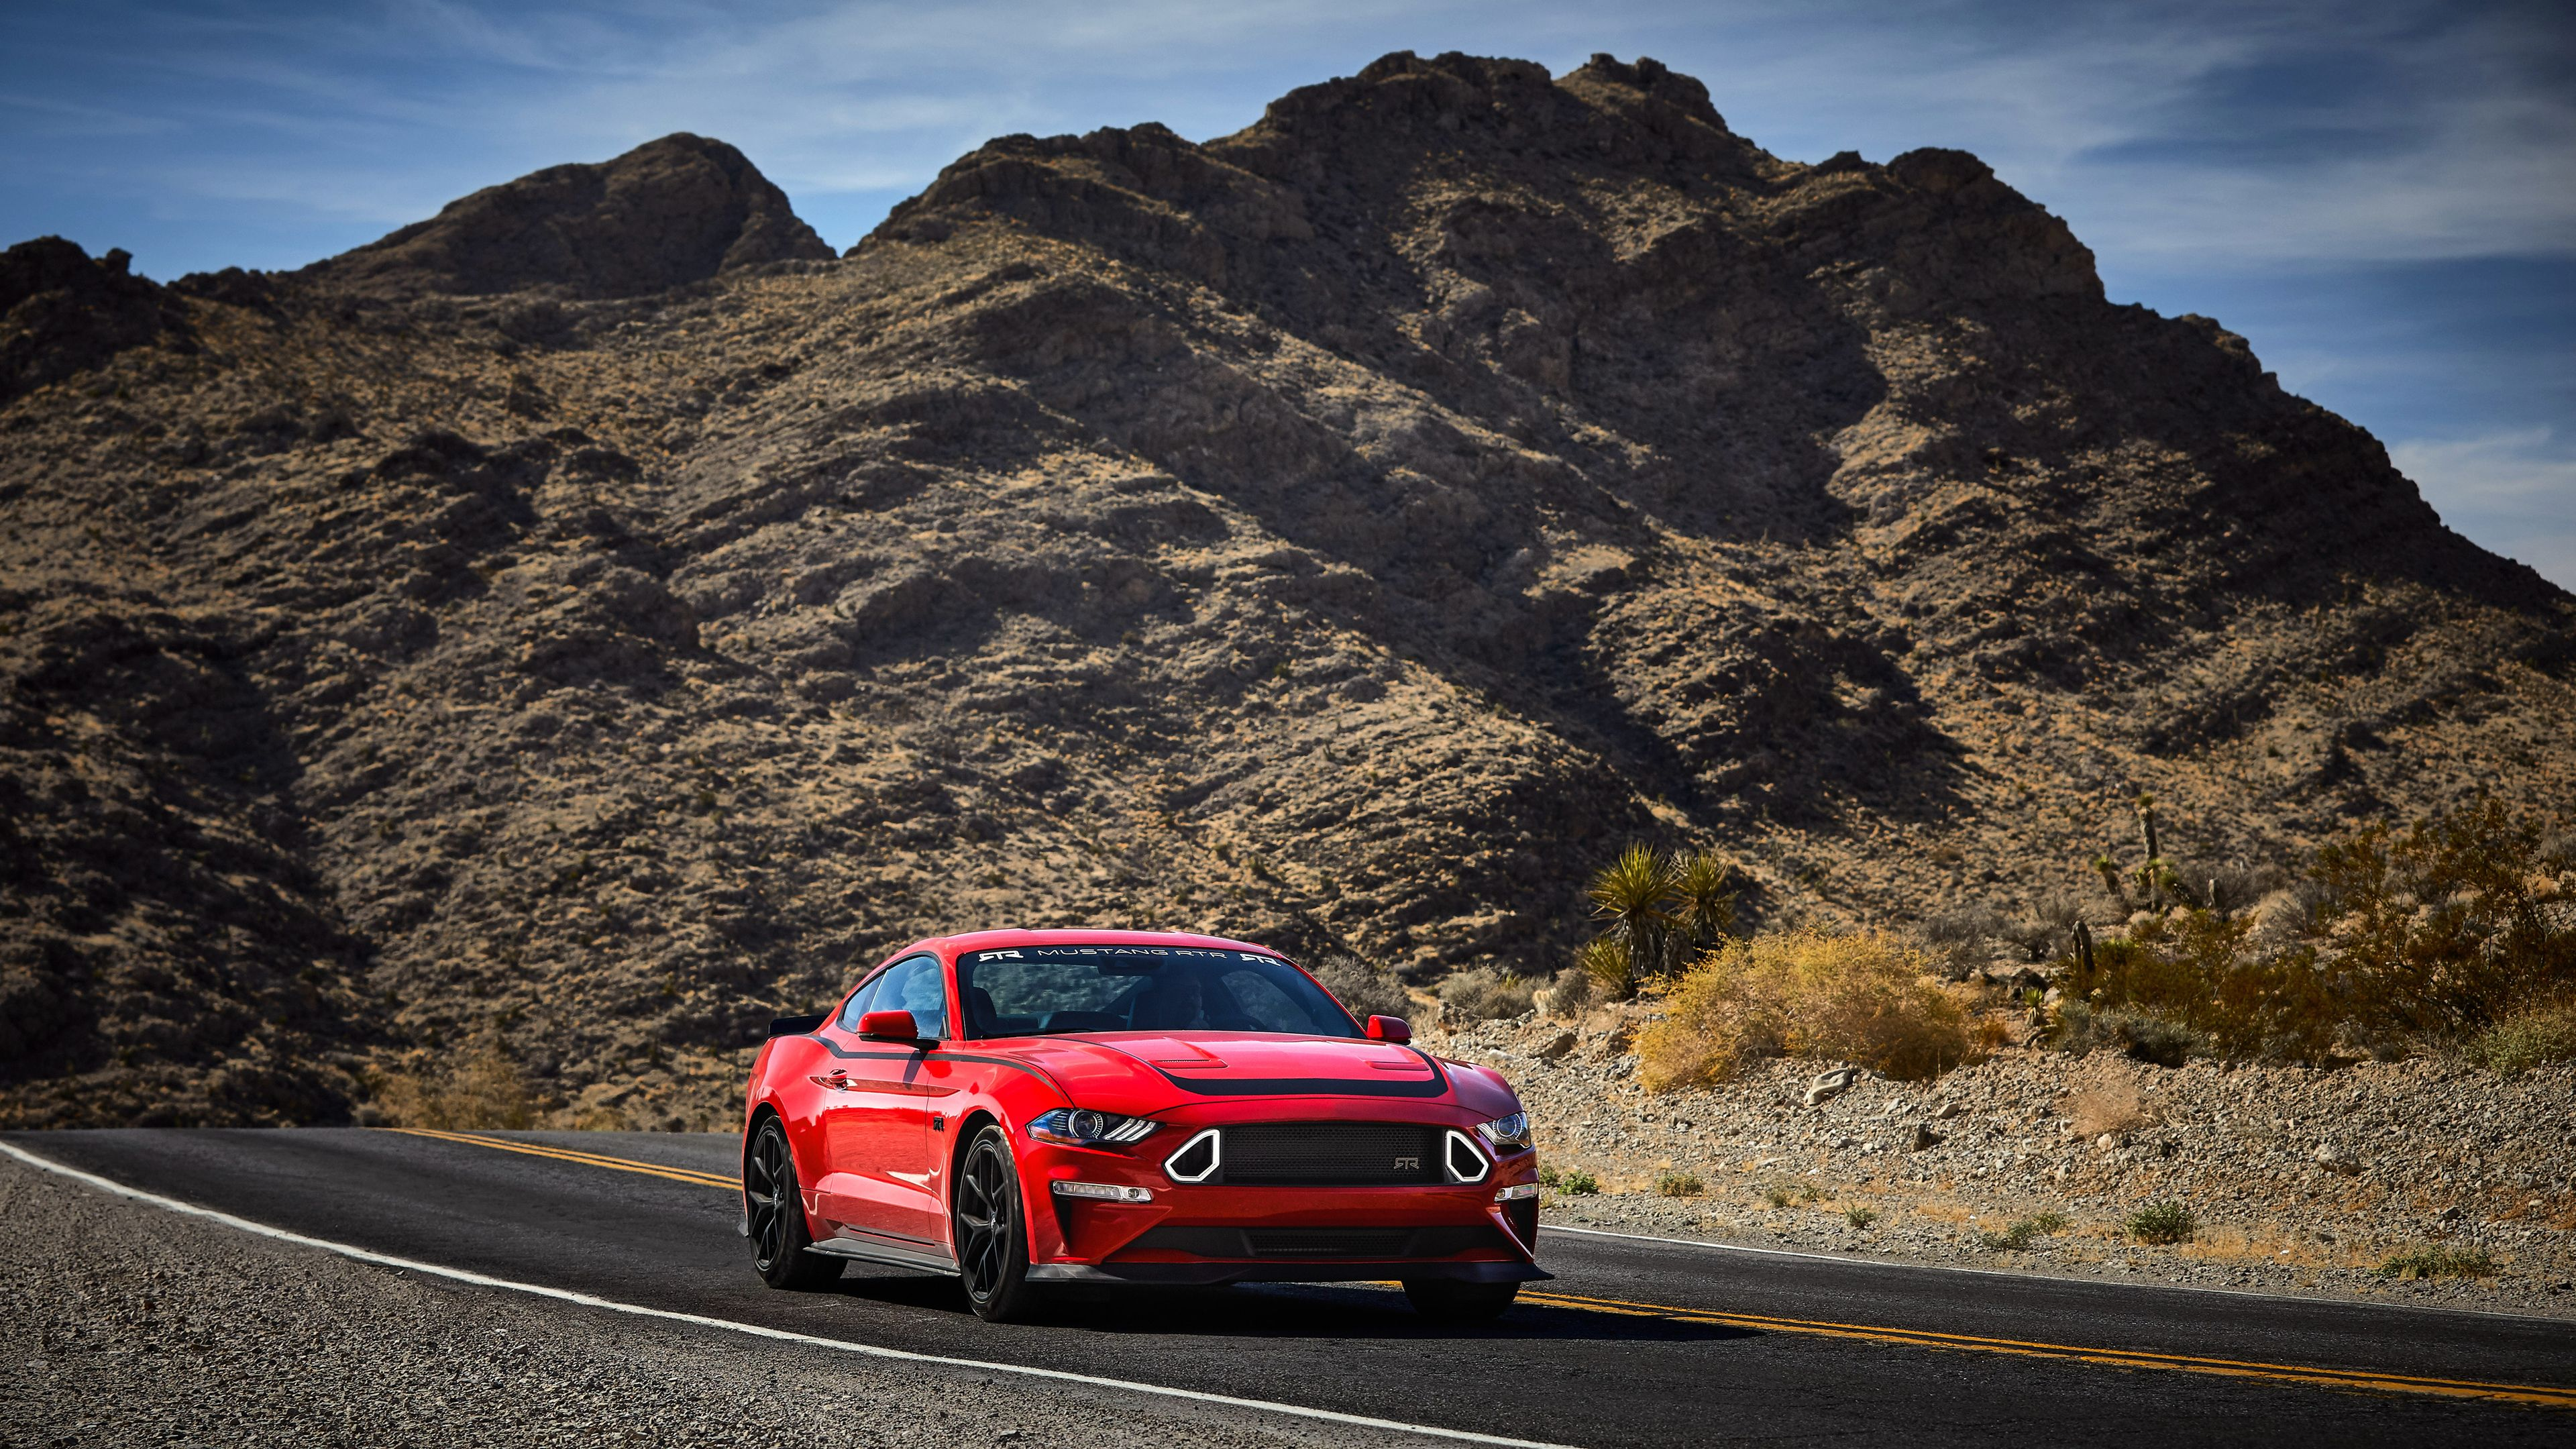 2019 Ford Series 1 Mustang Rtr 4k Mustang Wallpapers Hd Wallpapers